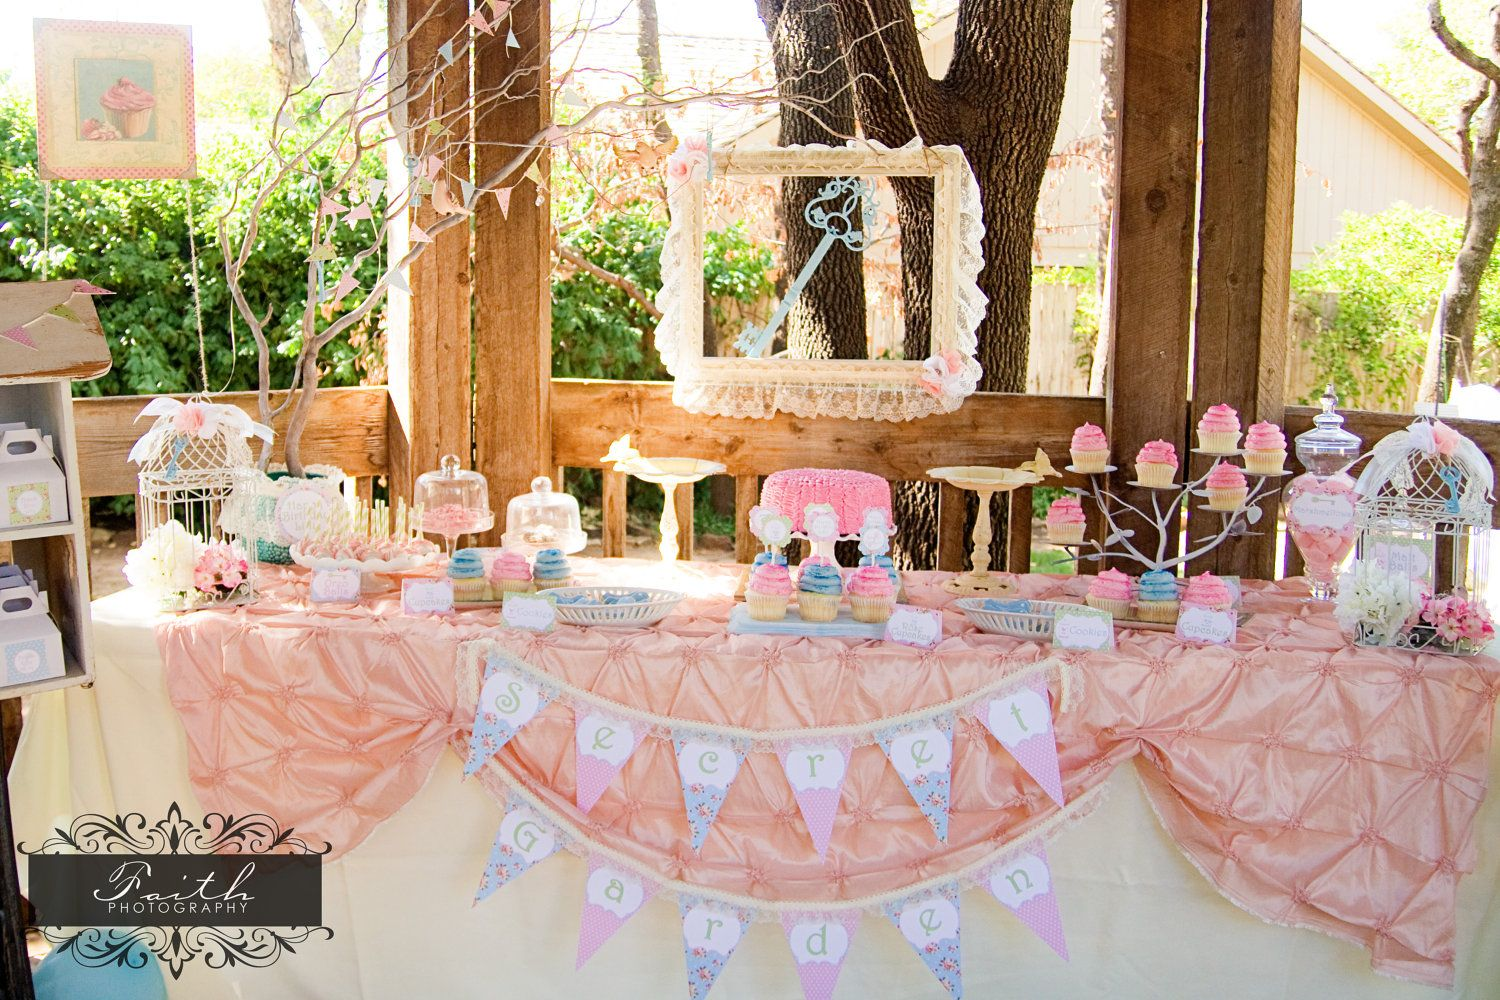 secret garden party printable personalized party package with photo invitation and thank you card as seen on karas party ideas